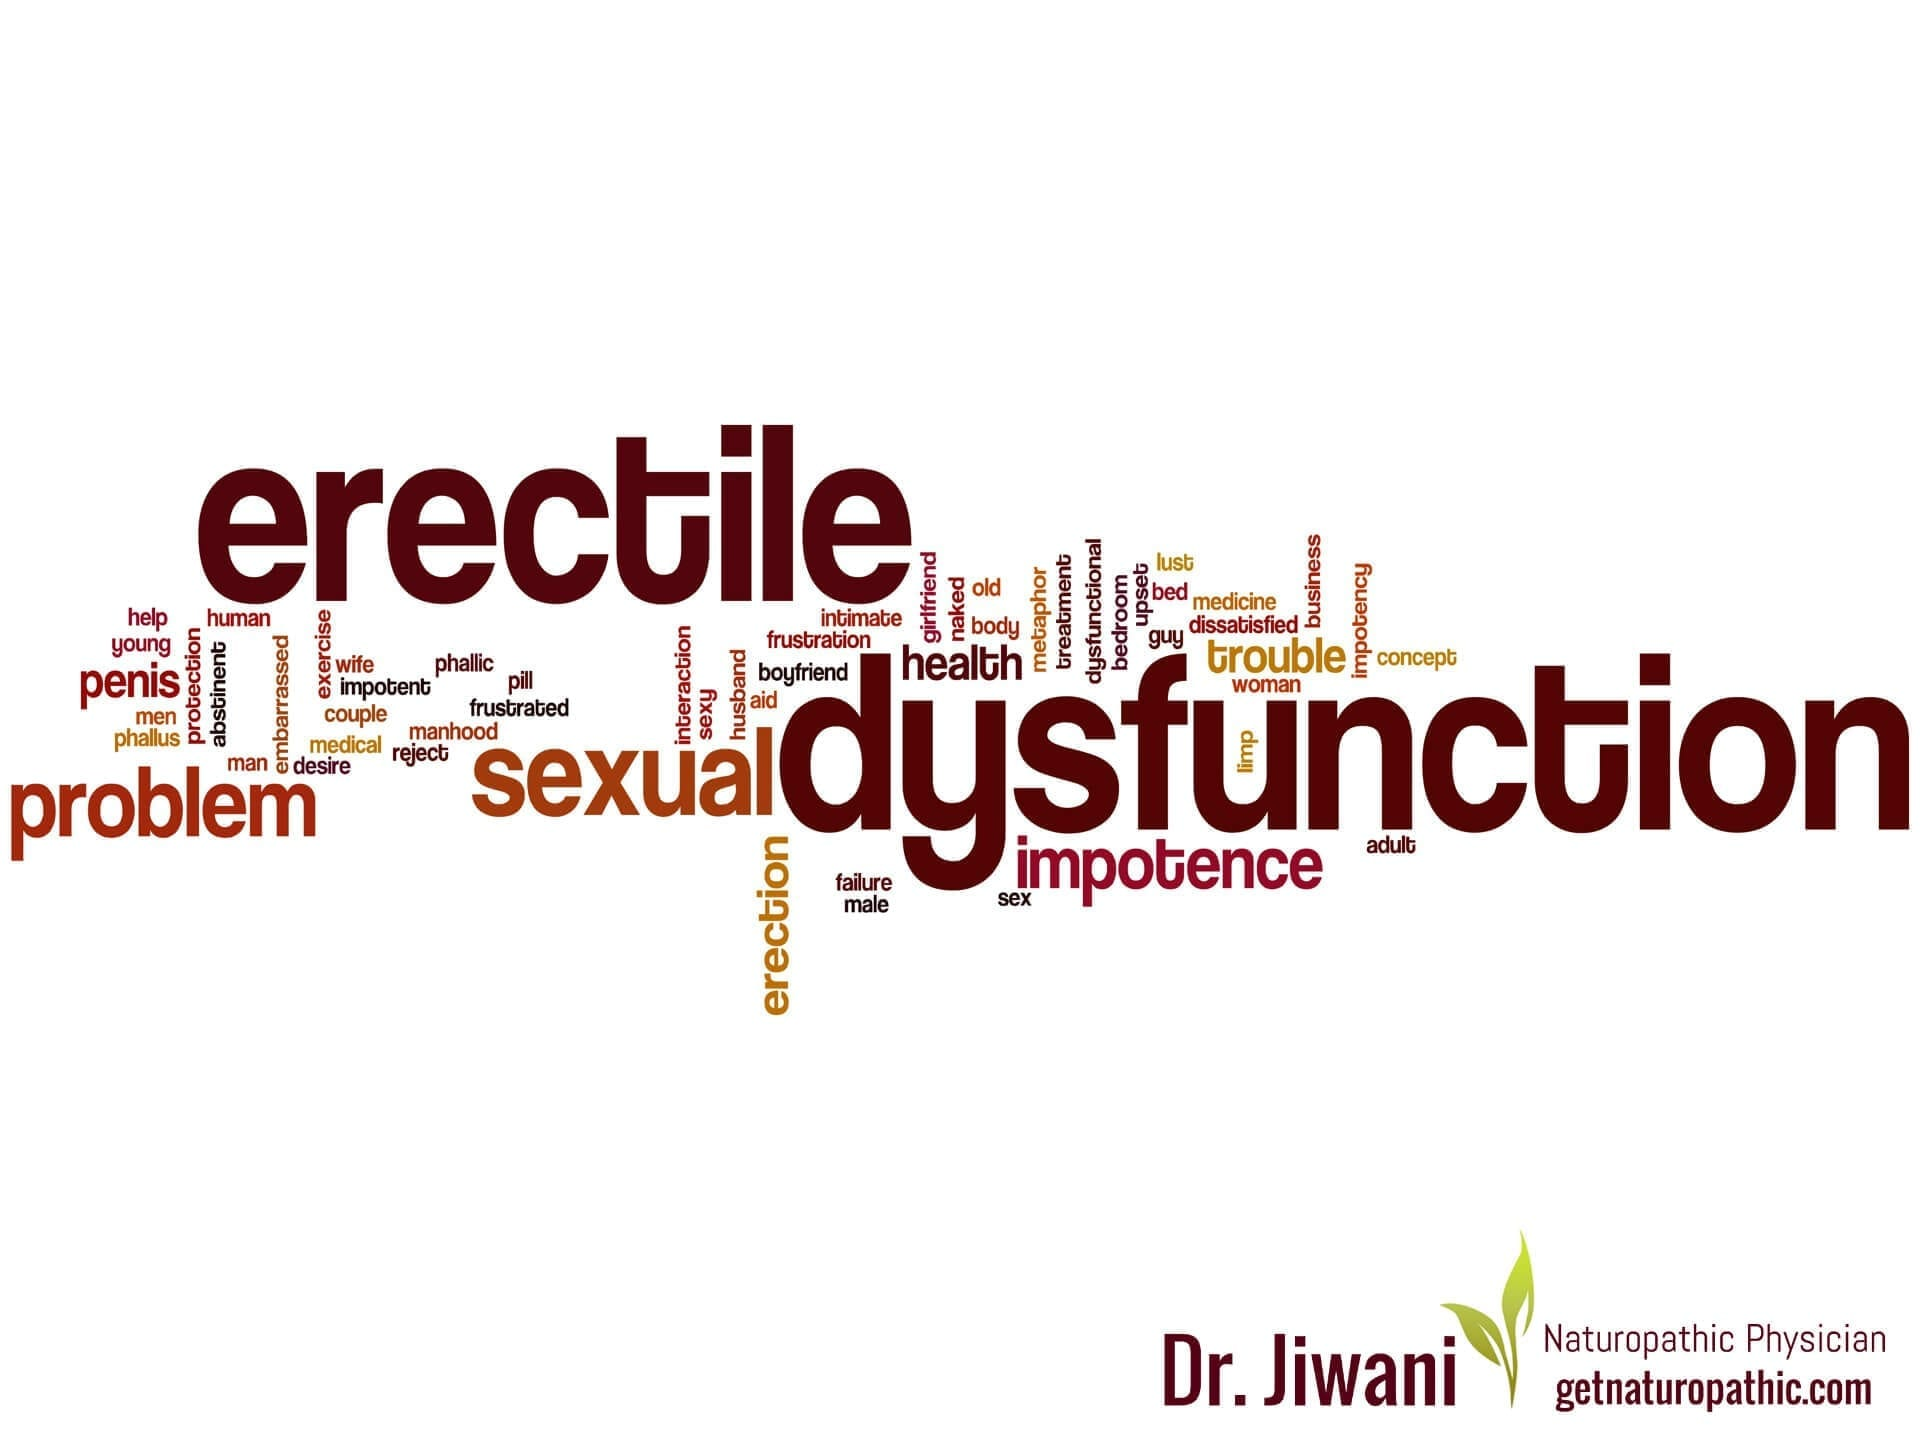 DrJiwani Erectile Dysfunction Sugar the Sweet Poison The Alarming Ways Sugar Damages Your Body & Brain* | Dr. Jiwani's Naturopathic Nuggets Blog